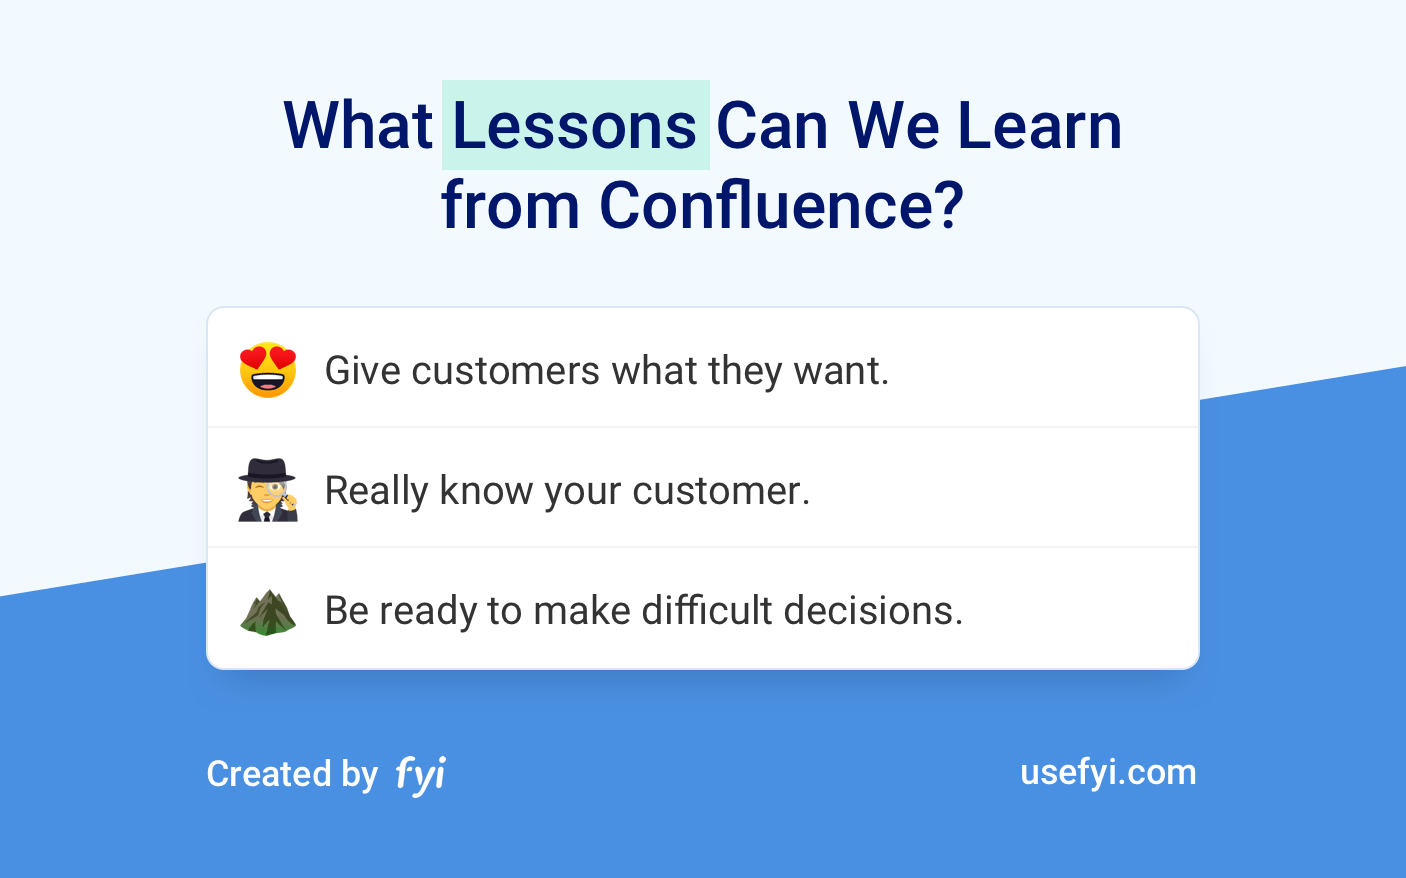 Lessons from Confluence